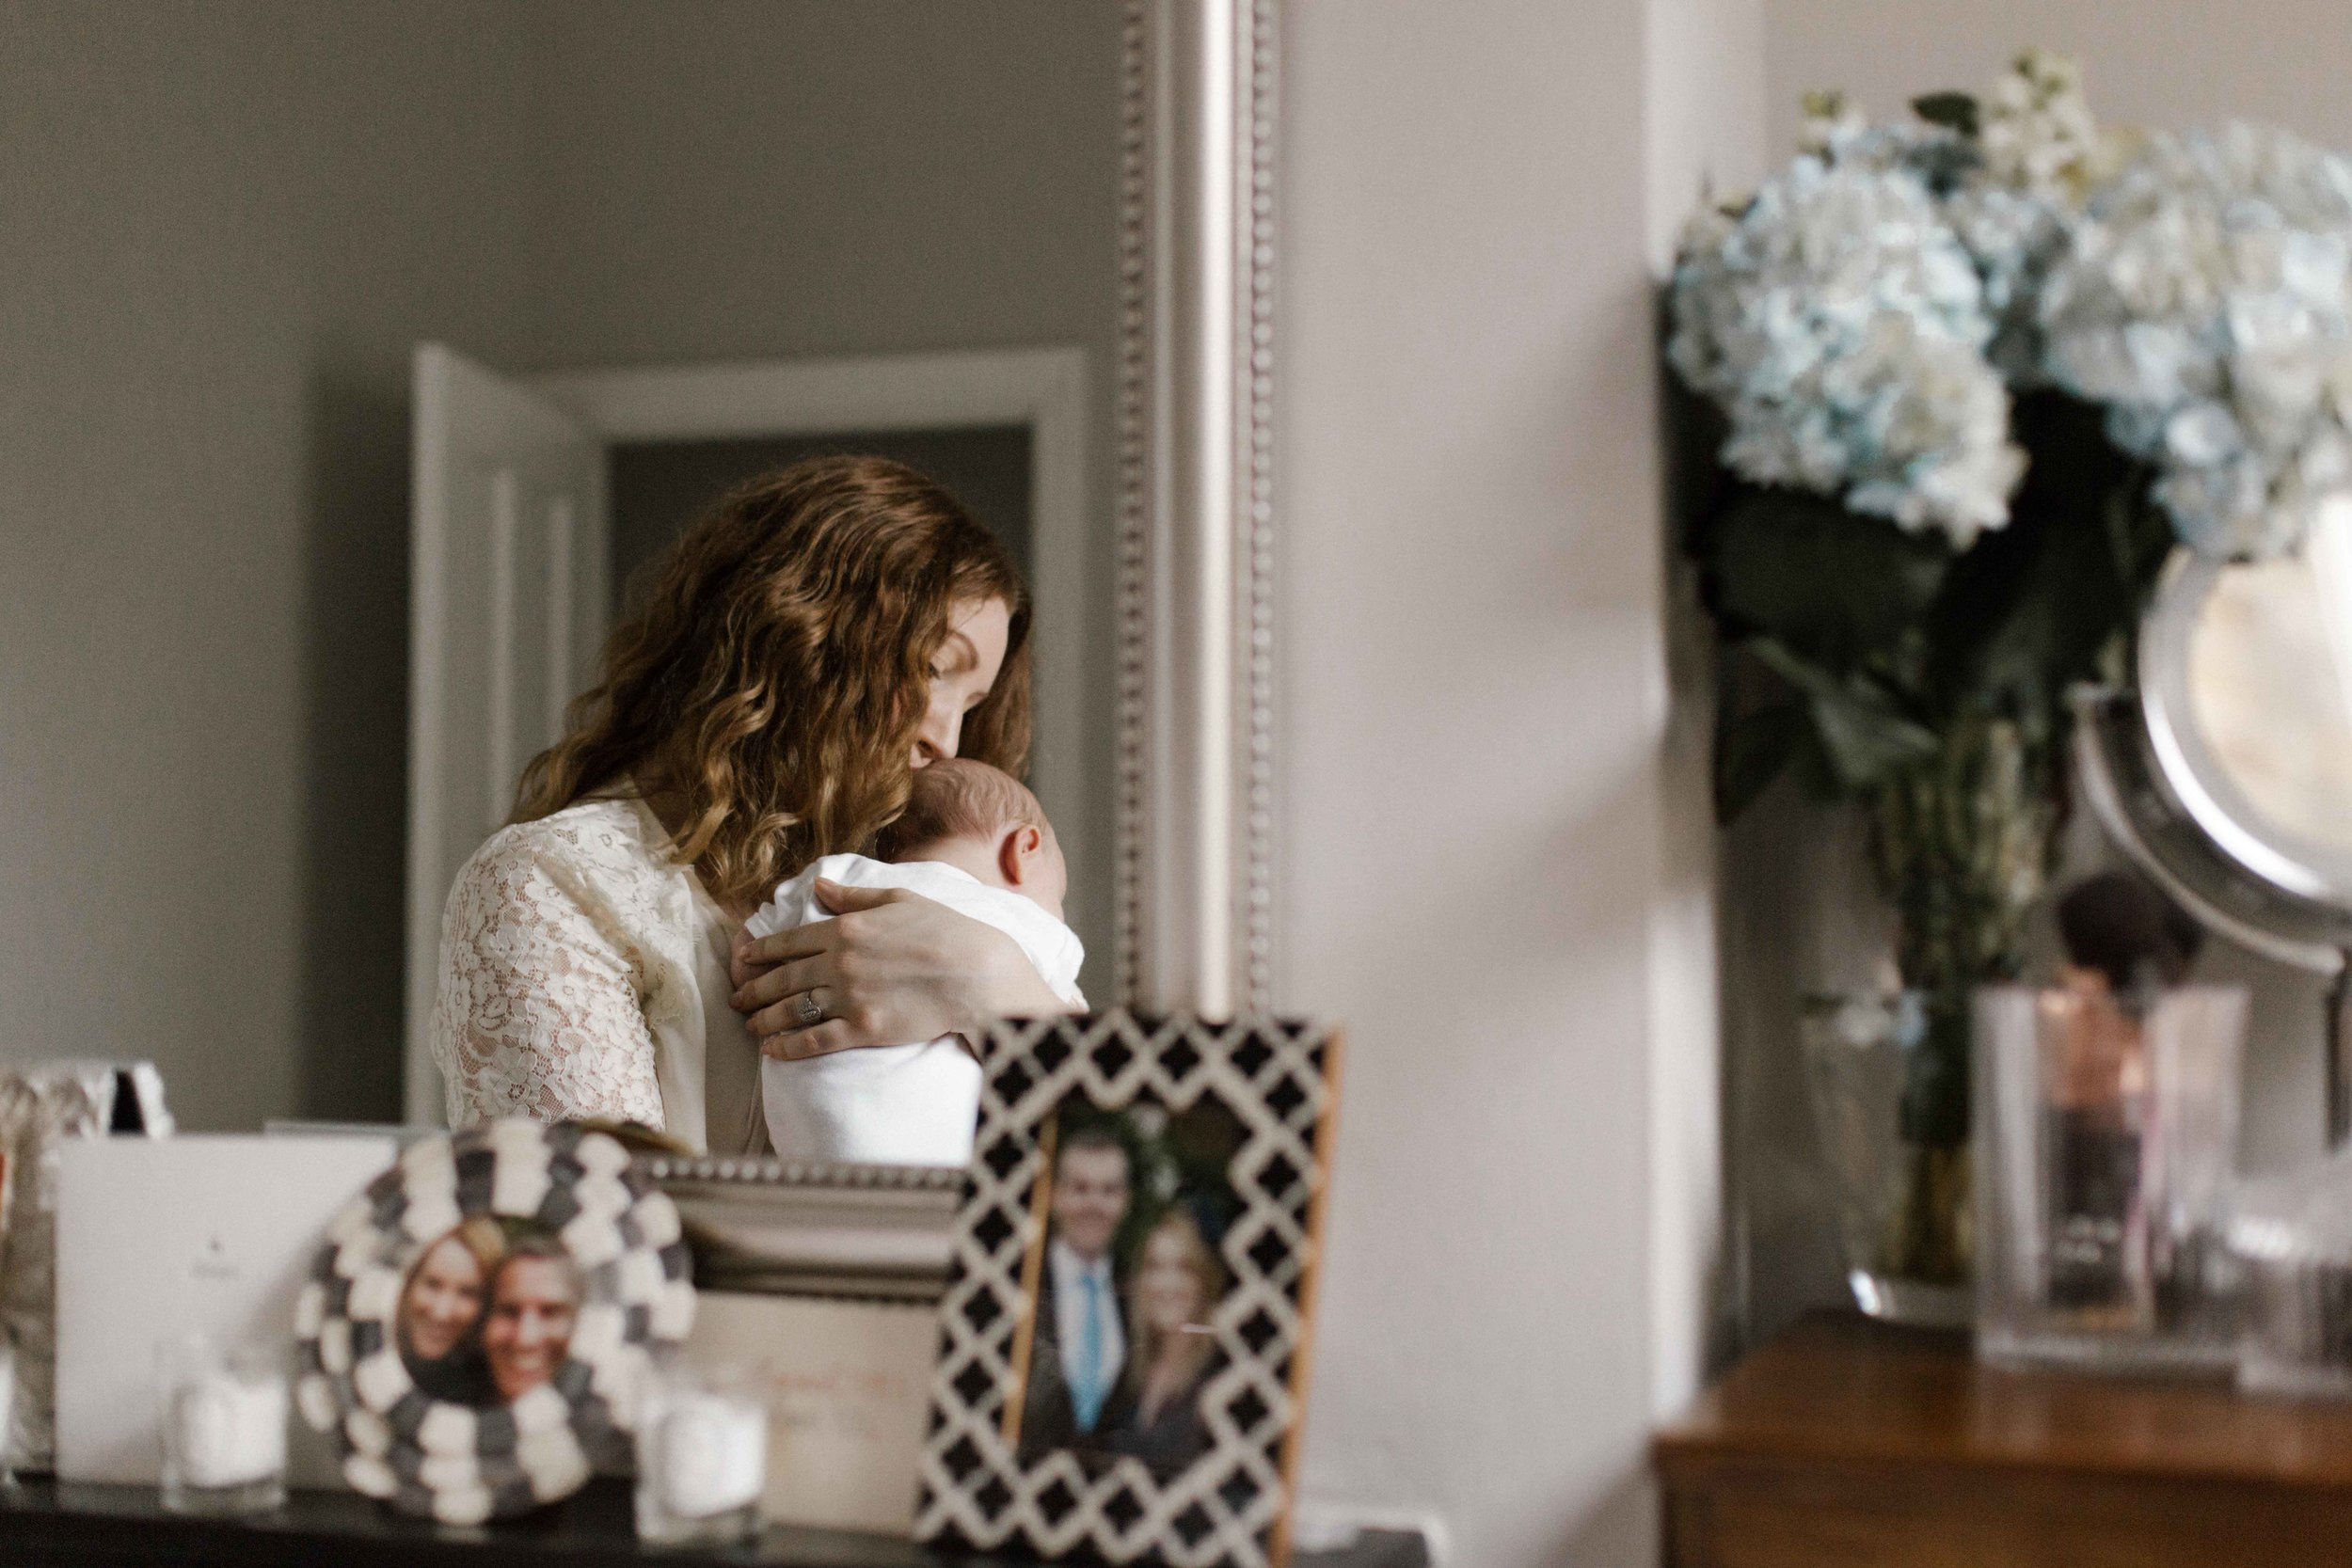 Richmond_newborn_photographer_Ealing_littlekinphotography-22.jpg